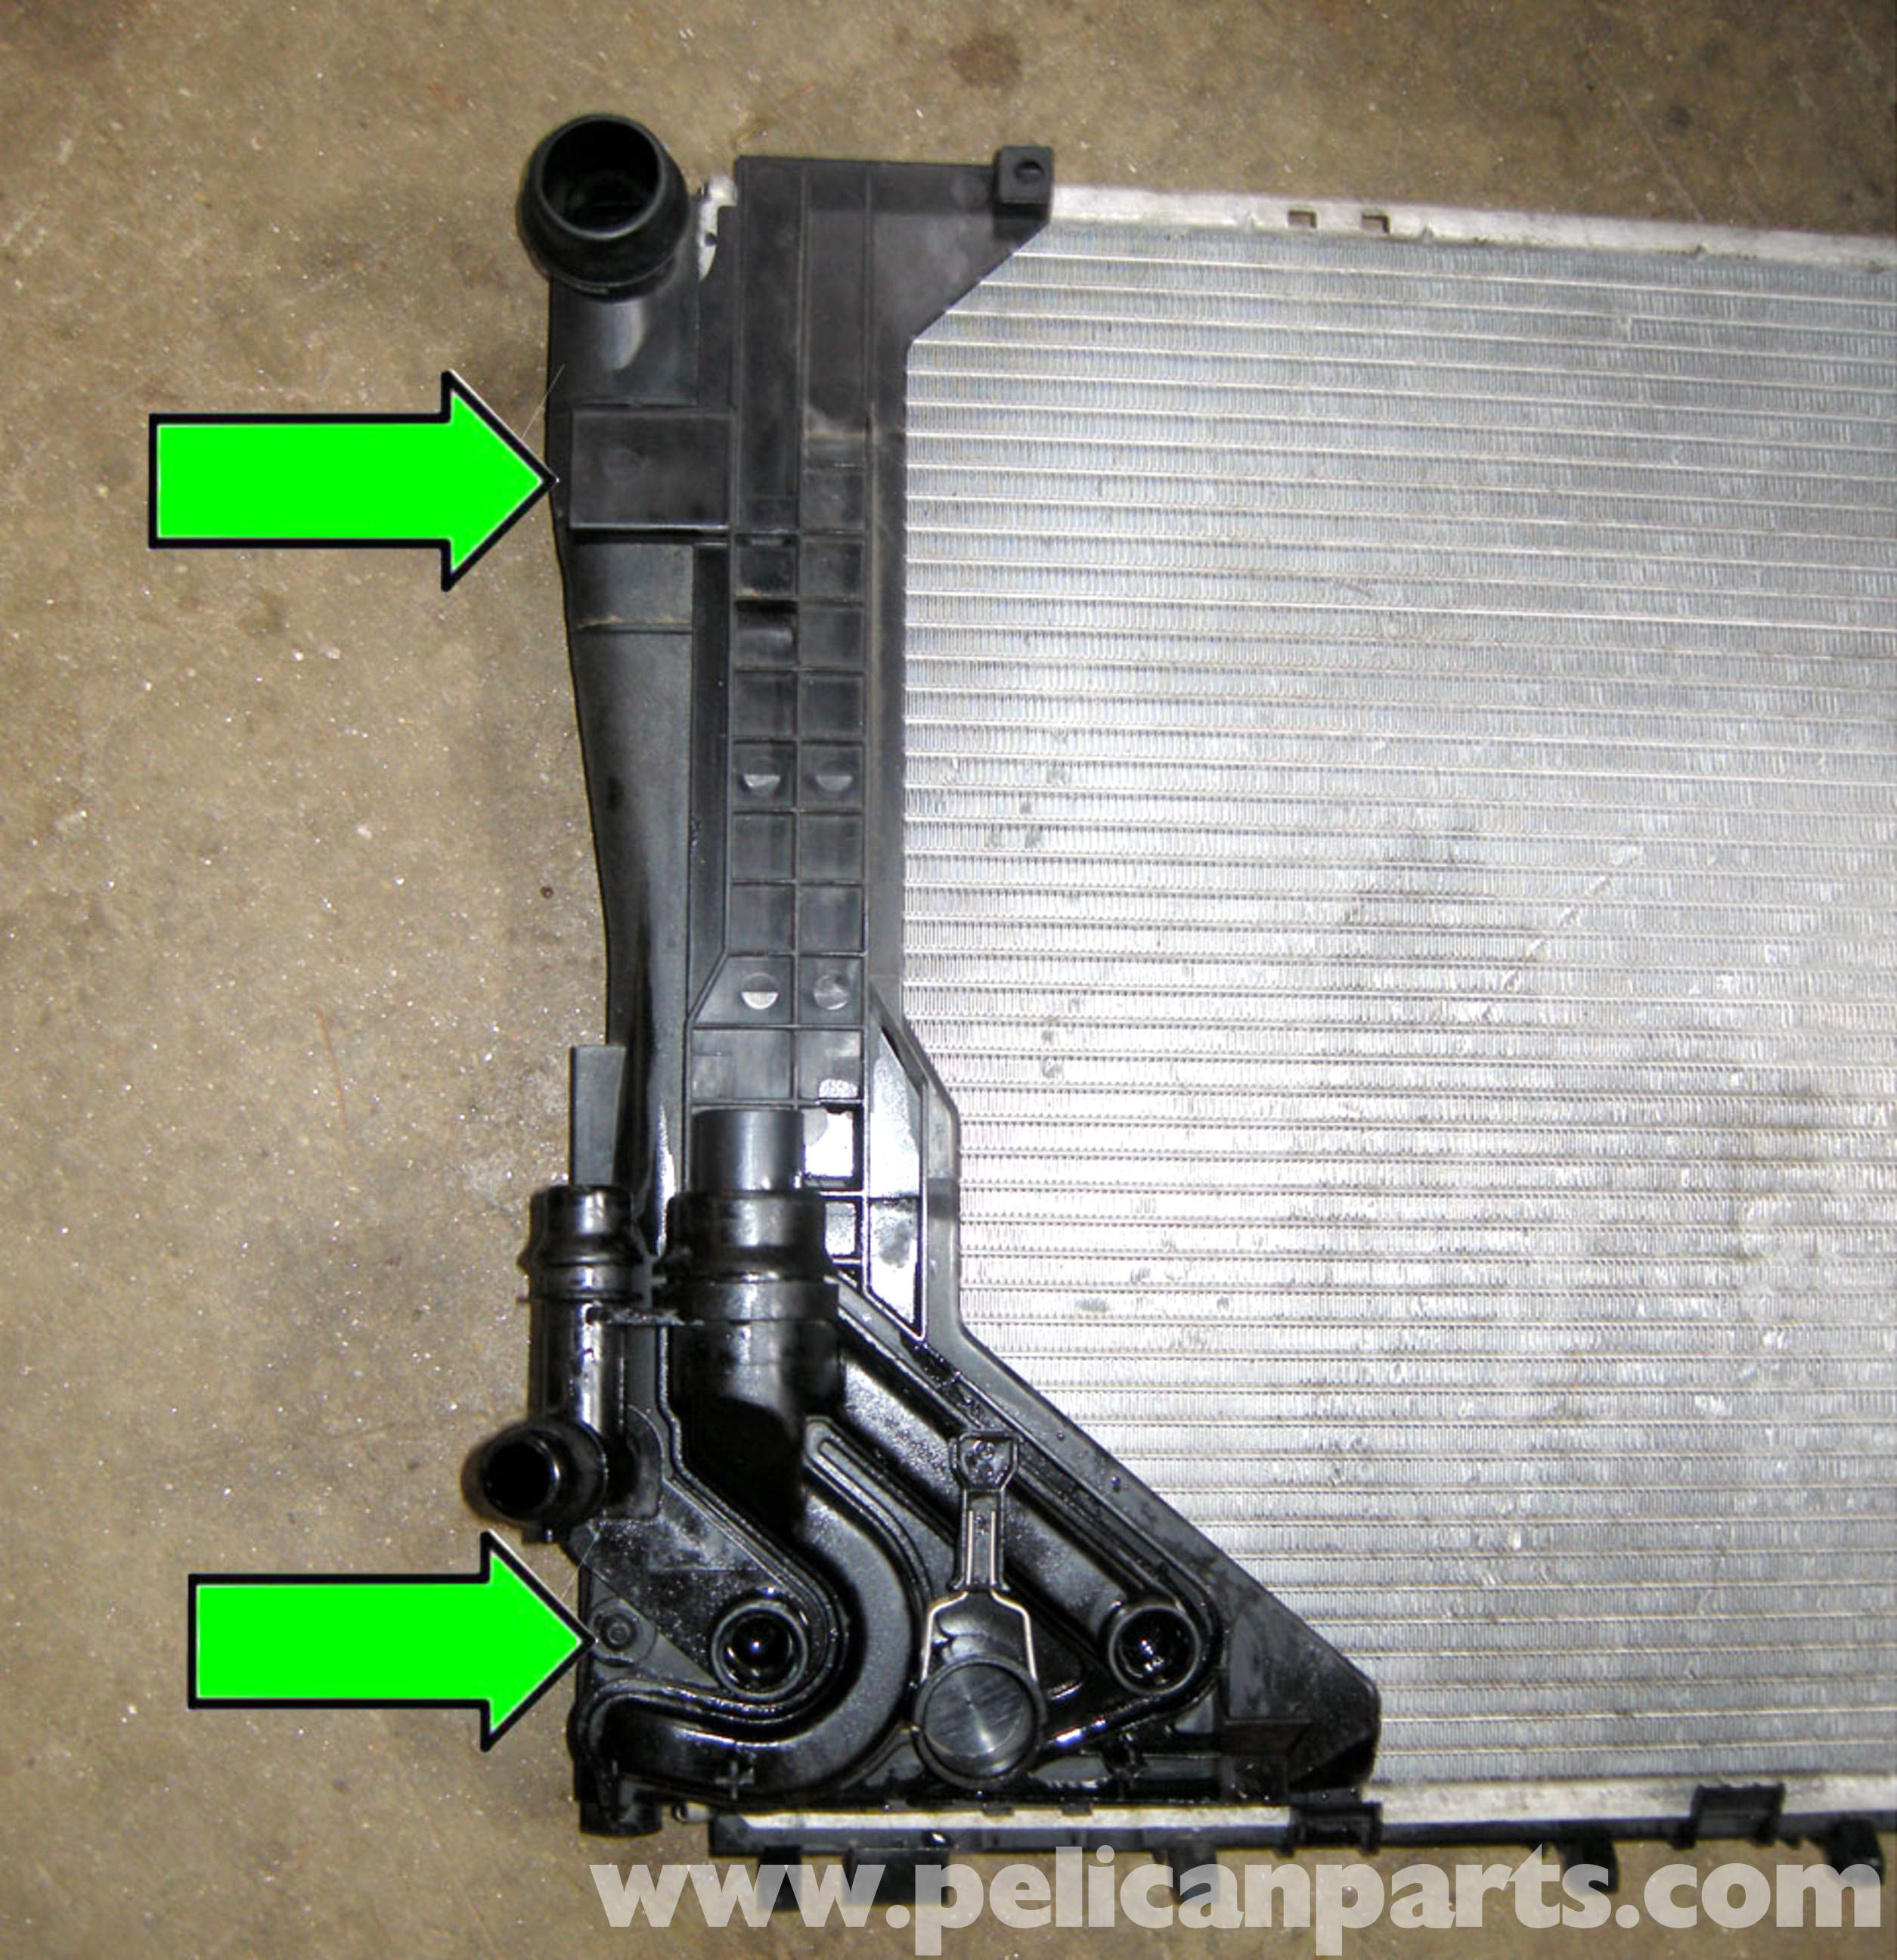 Bmw e46 radiator replacement bmw 325i 2001 2005 bmw 325xi 2001 large image extra large image cheapraybanclubmaster Gallery